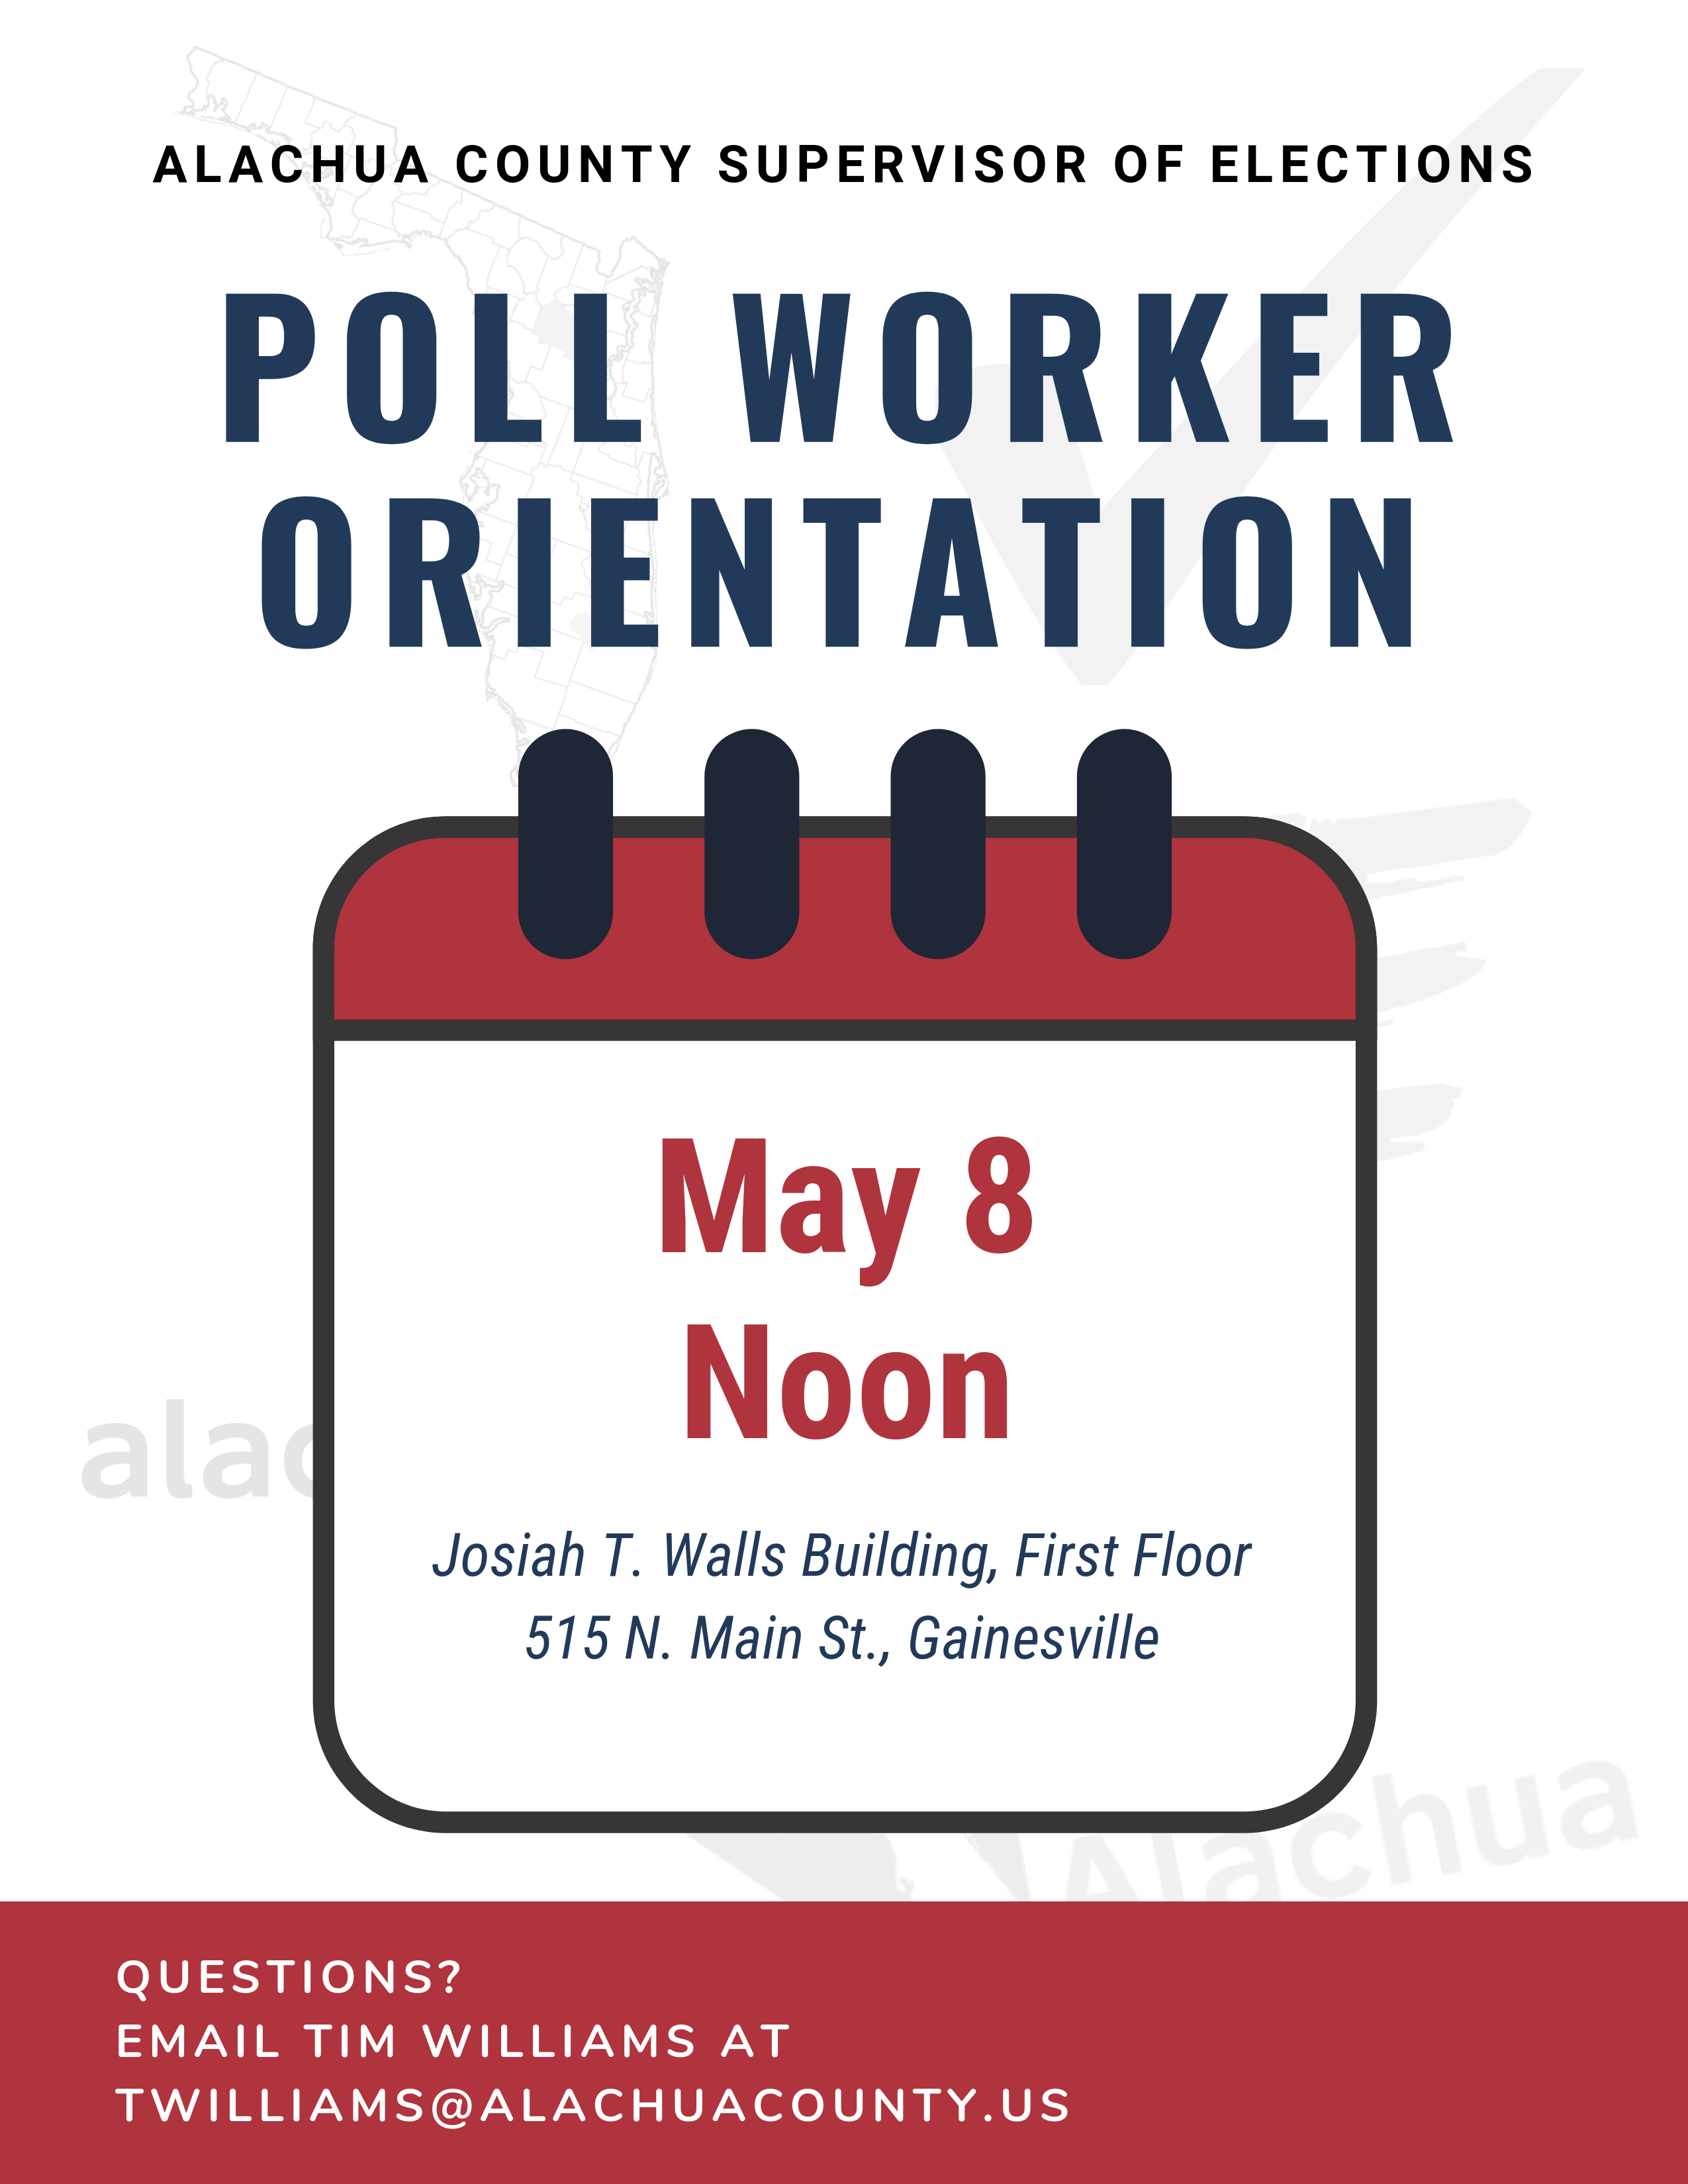 Poll Worker Orientation: May 8 at Noon